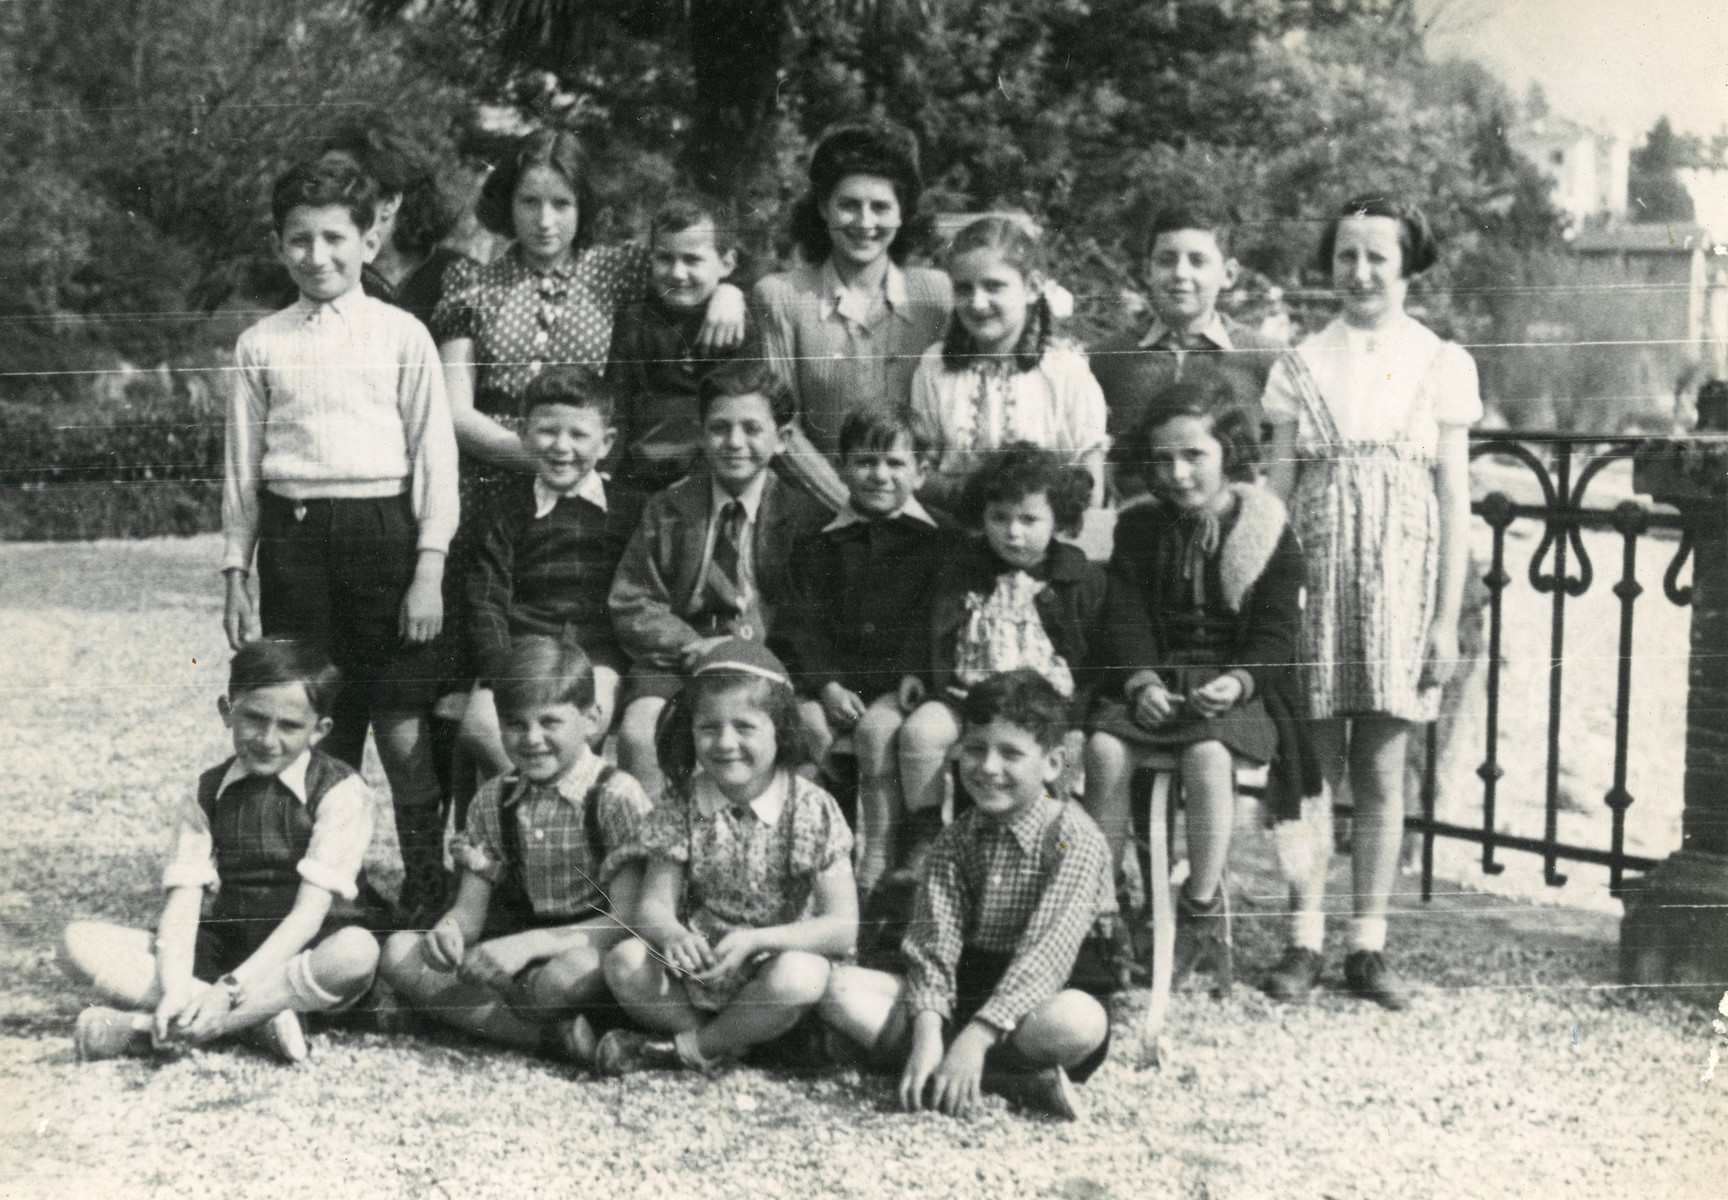 Group portrait of Jewish refugee children in the children's home in Ascona, Switzerland  Mirjam Ermann is in the middle row on the far right .  Her sister Suzanne is next to her.